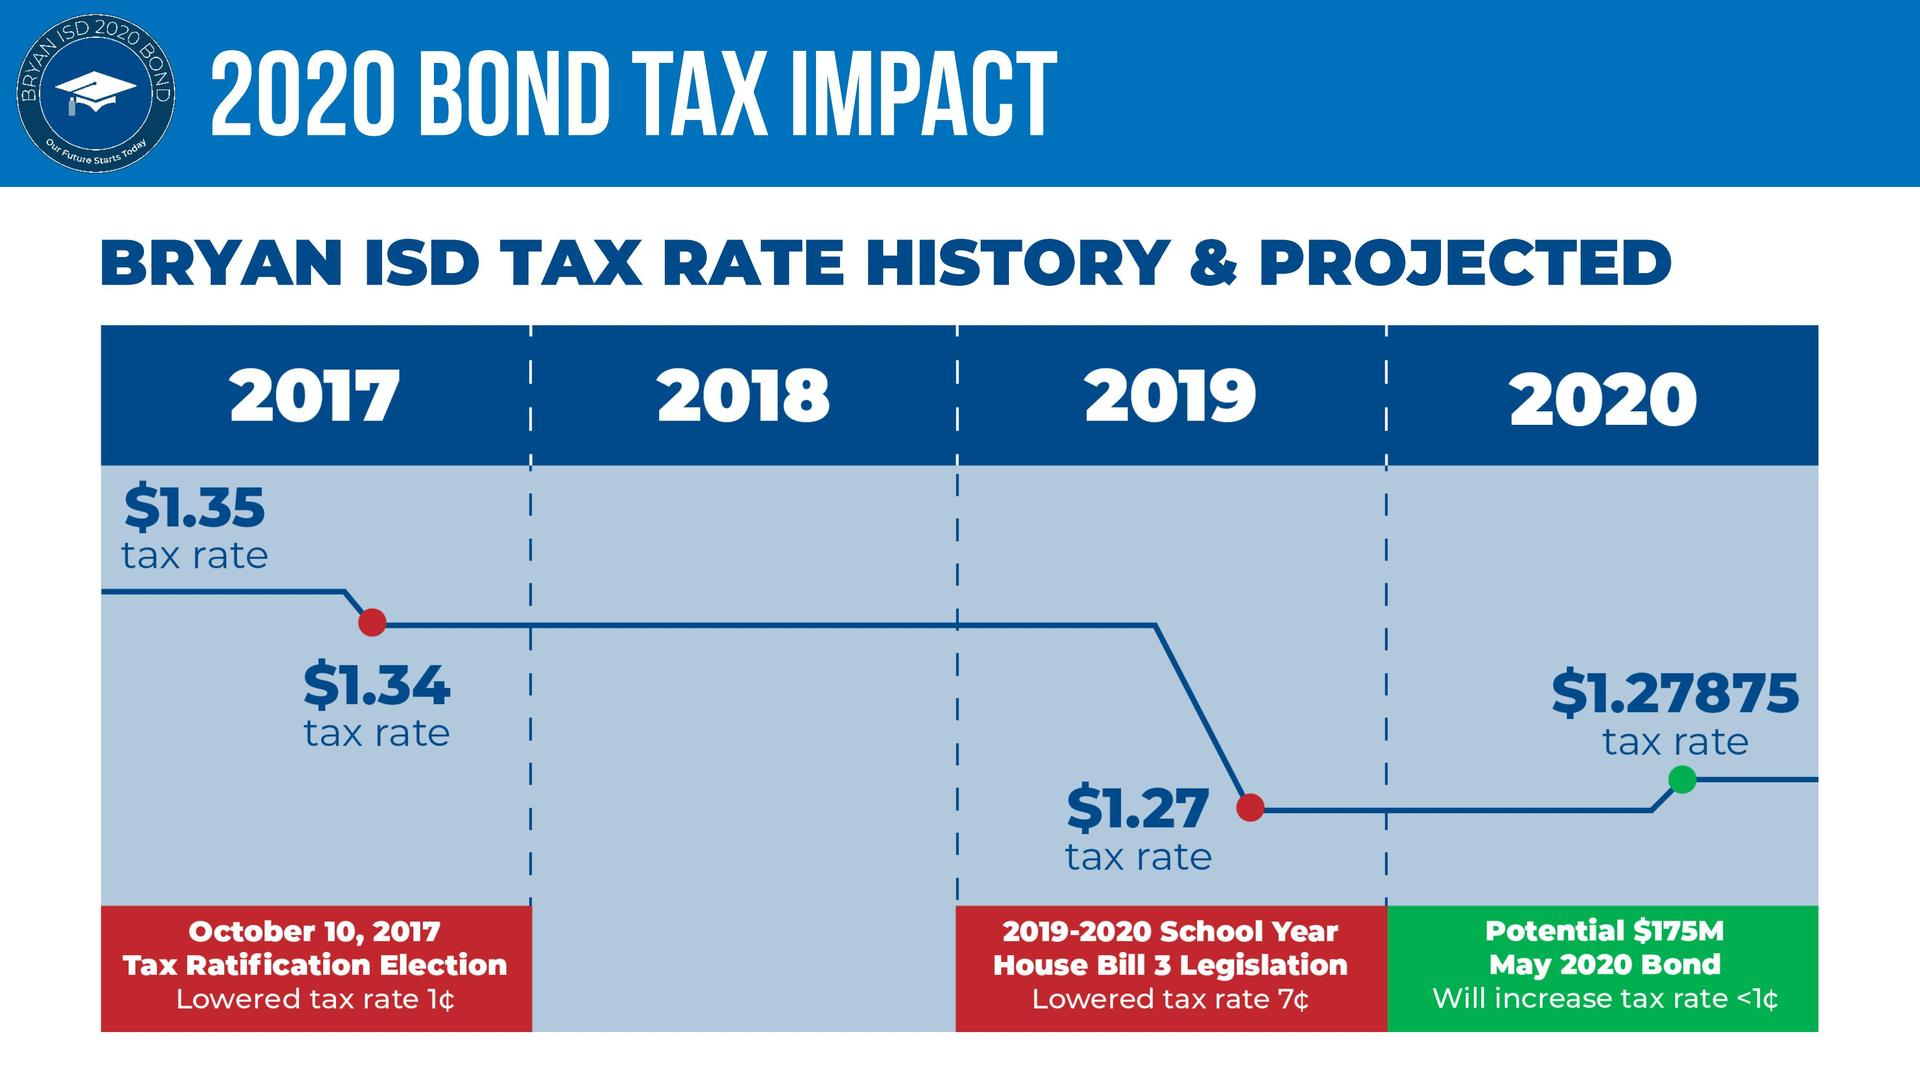 Bryan ISD Tax Rate Line Graph